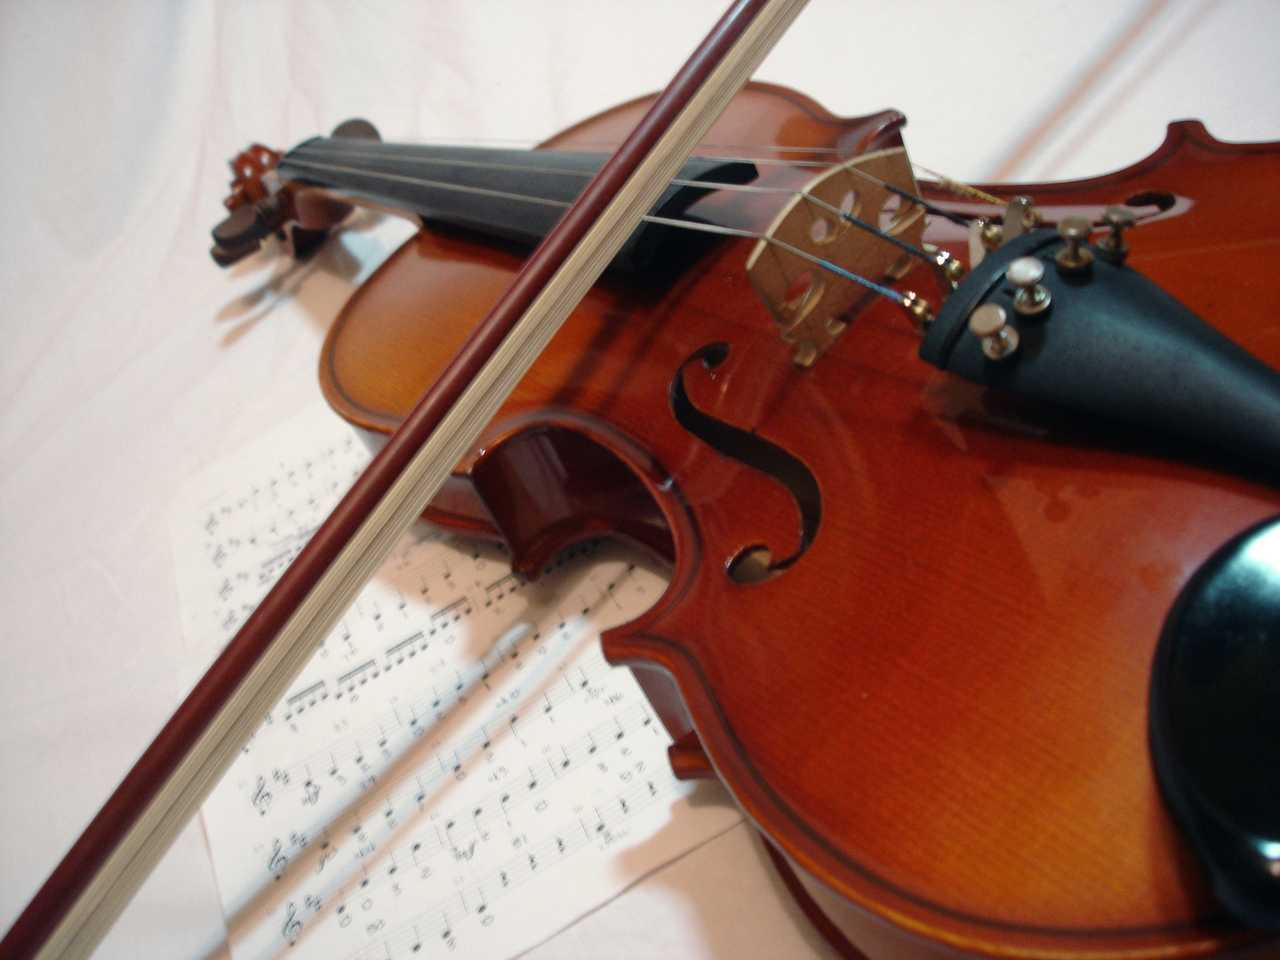 Image of a violin with its bow lying across the top of it as it sits on a table covered in sheet music.